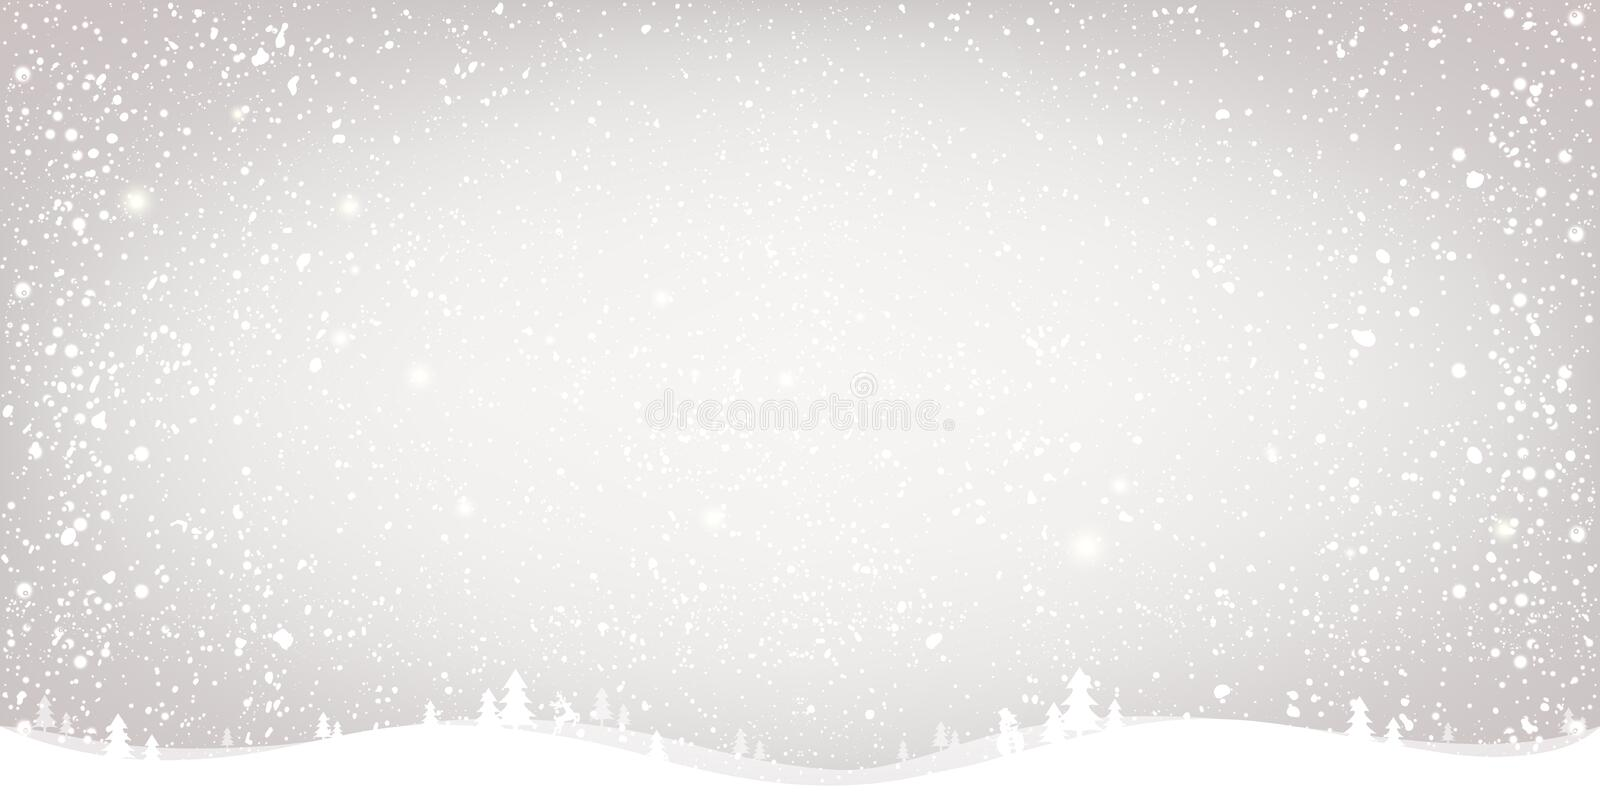 Winter Christmas background with landscape, snowflakes, light, stars. Xmas and New Year card. Vector Illustration stock illustration